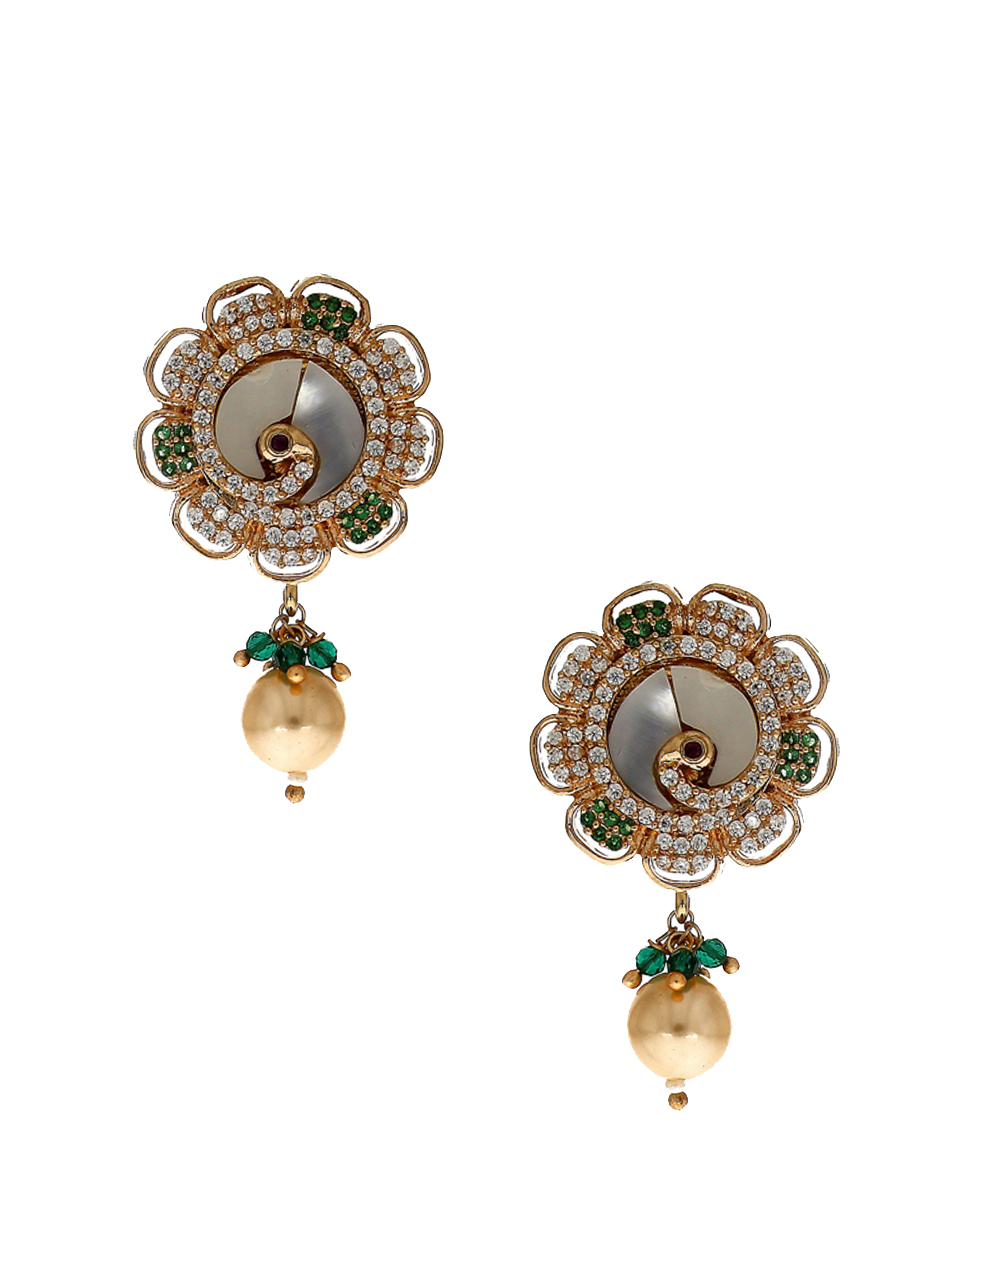 Floral design studded with green diamond pendant set for women